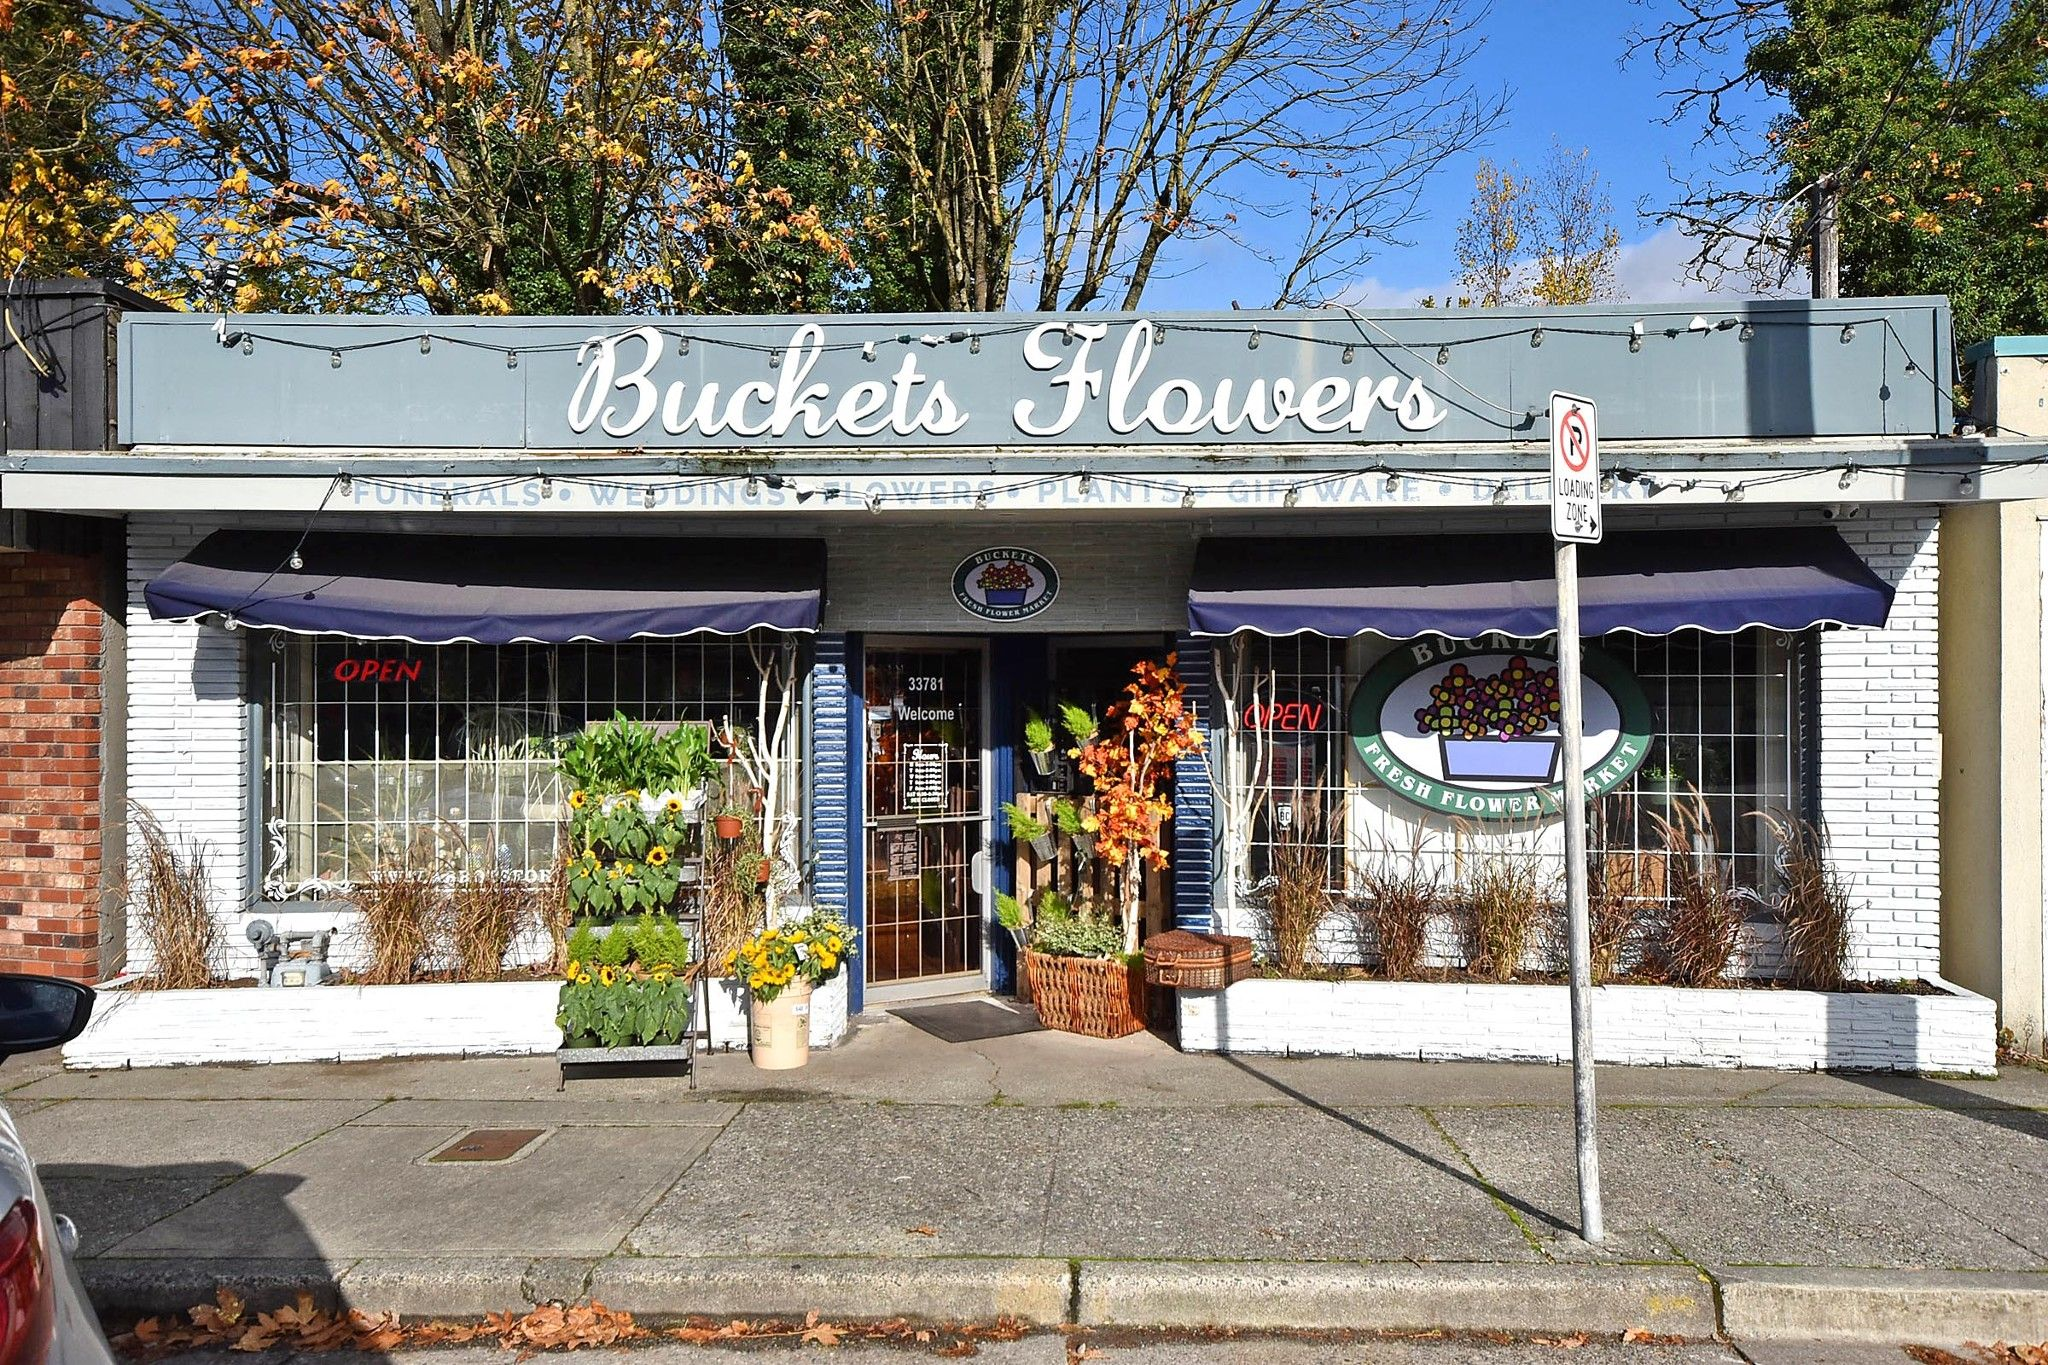 Main Photo: 33781 SOUTH FRASER WAY in Abbotsford: Central Abbotsford Business for sale : MLS®# C8028645